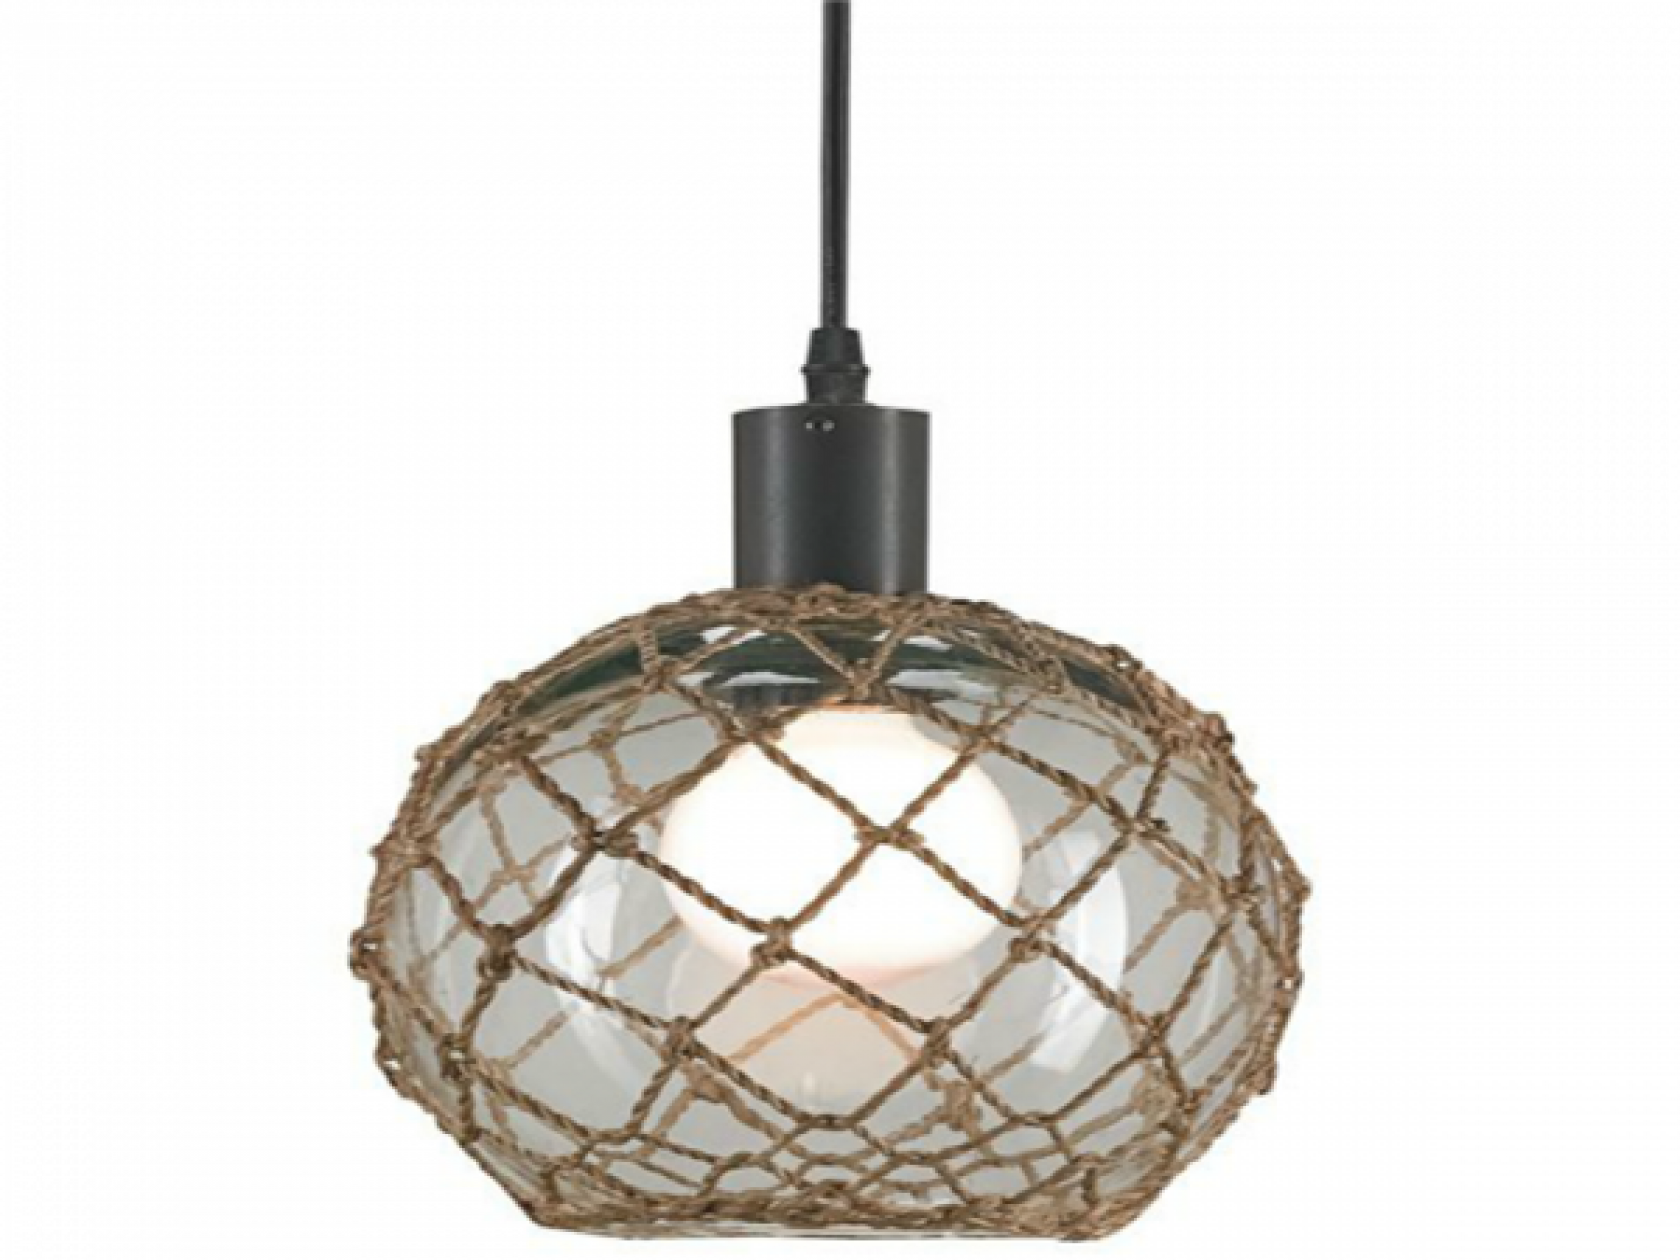 Chandeliers And Hanging Lights With Coastal Style Vintage Copper Rustic Iron Rope Seashells Online Put The Finishing Touch On